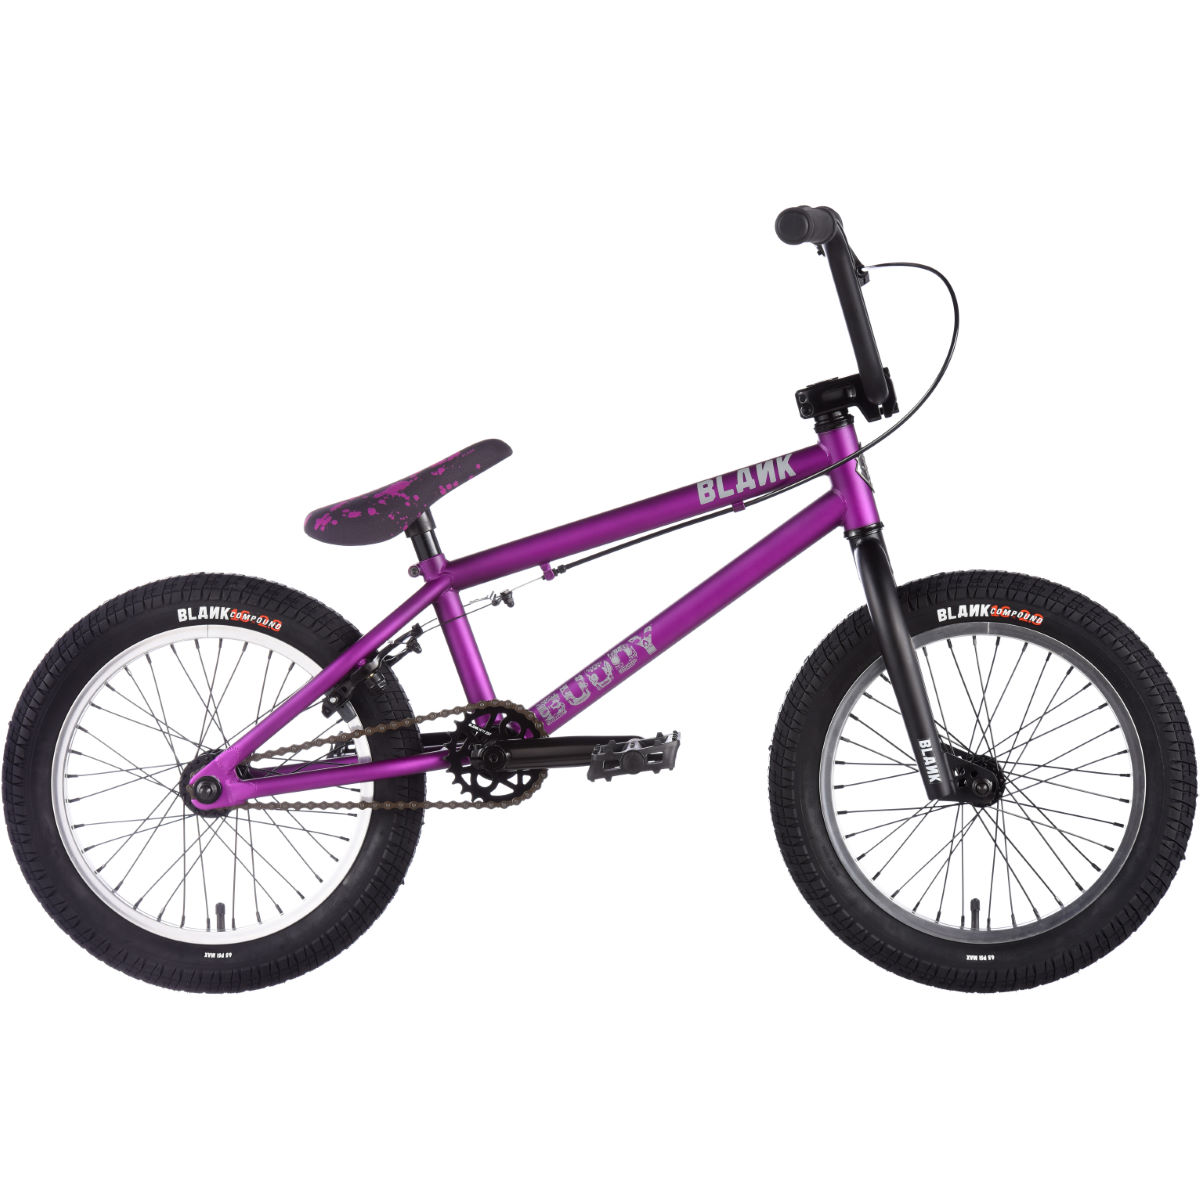 "Blank Buddy 16"" BMX Bike - Bicicletas de BMX Freestyle"